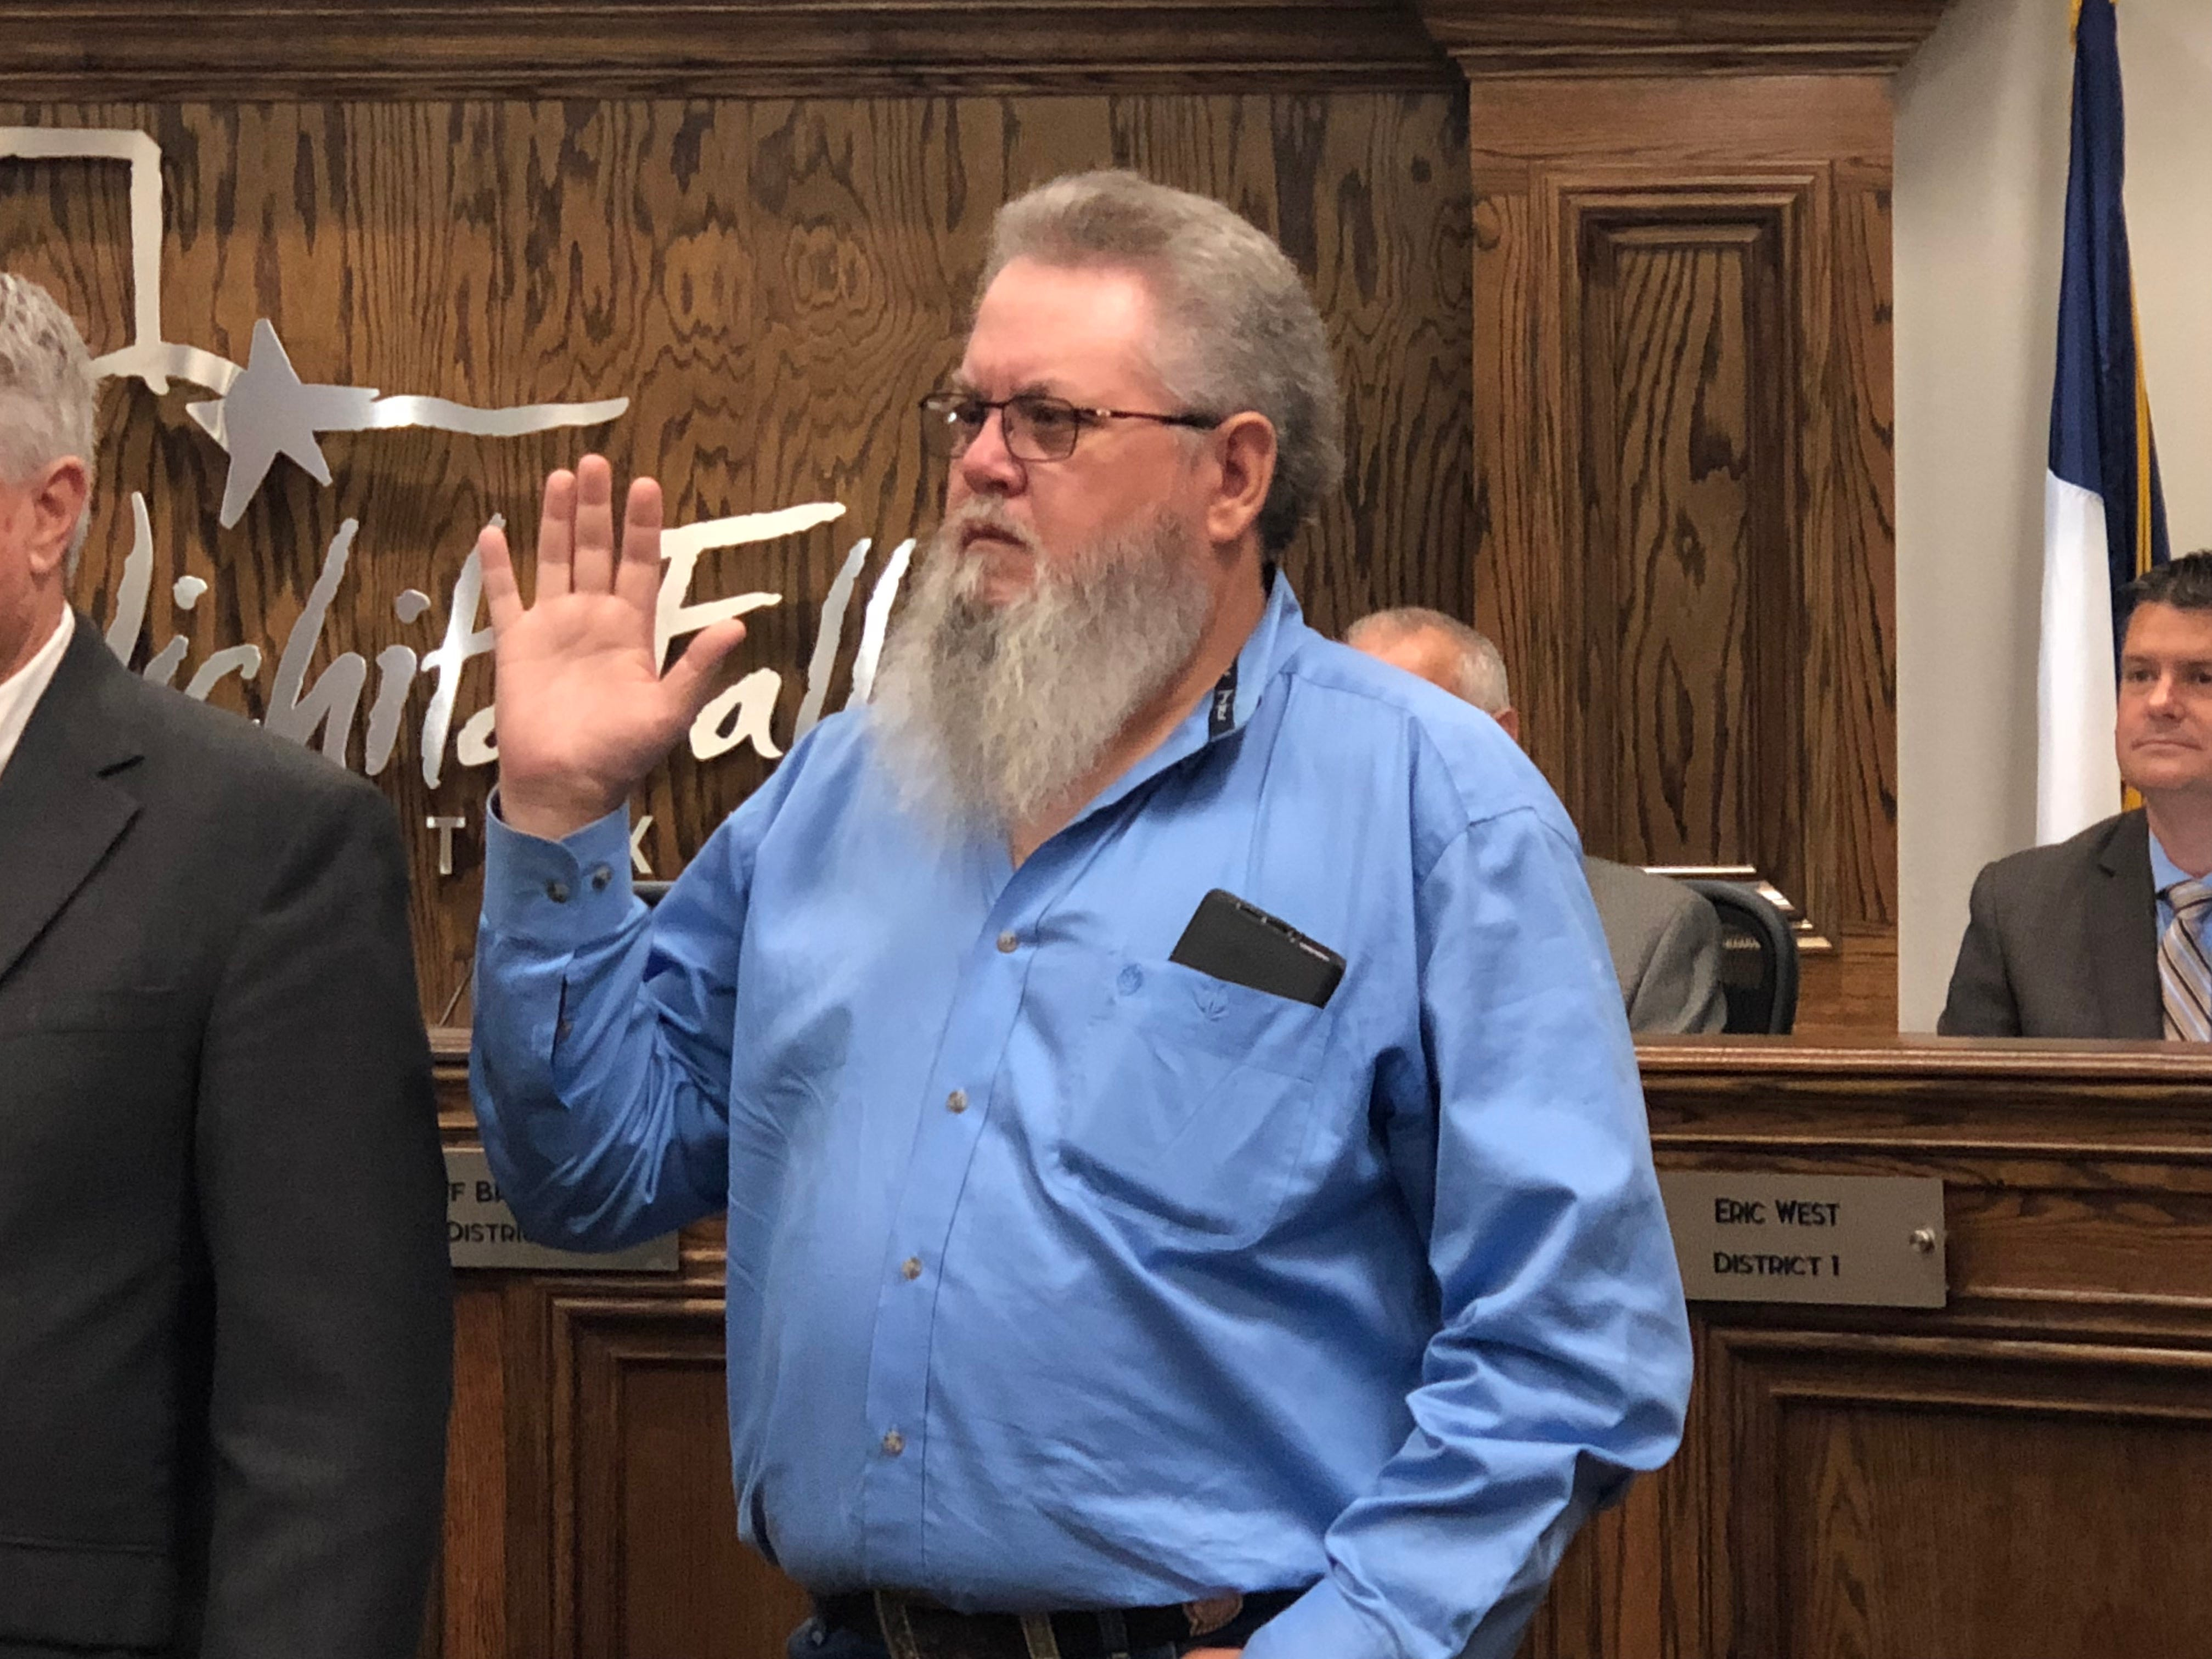 Newly elected Councilor for District 5 Steve Jackson takes the oath of office Tuesday.